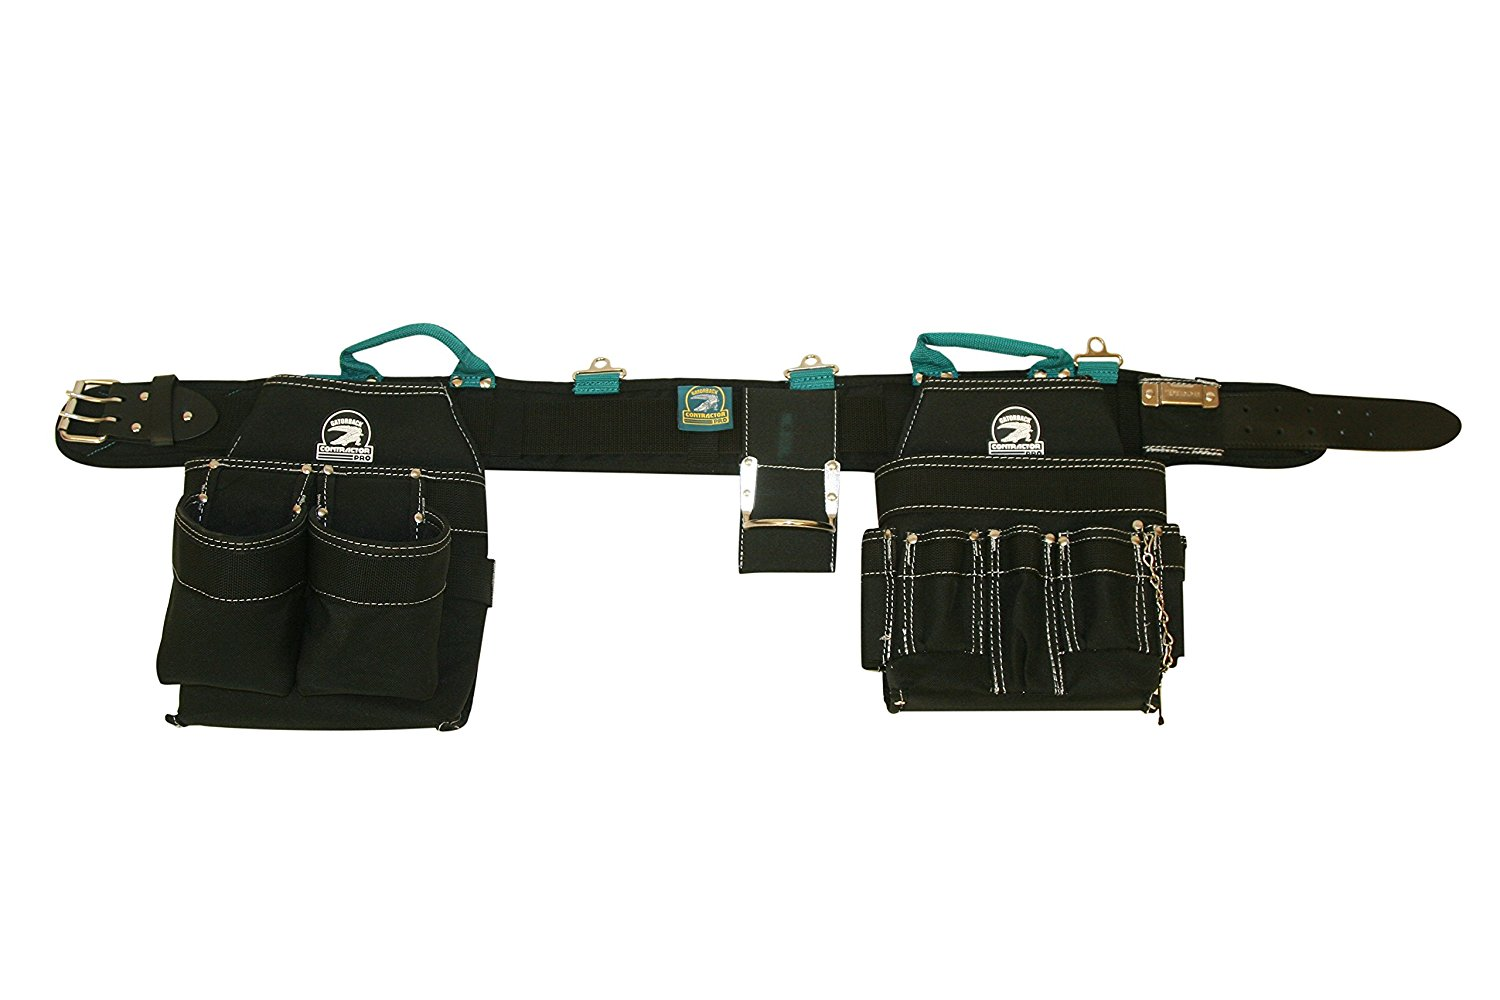 Gatorback Professional Electrician's Tool Belt Combo w/ Padded Comfort Belt Small 26-30 Inch Waist). Ventilated Comfort Belt with Heavy Duty Pouches for Electricians, Carpenters, Framer.